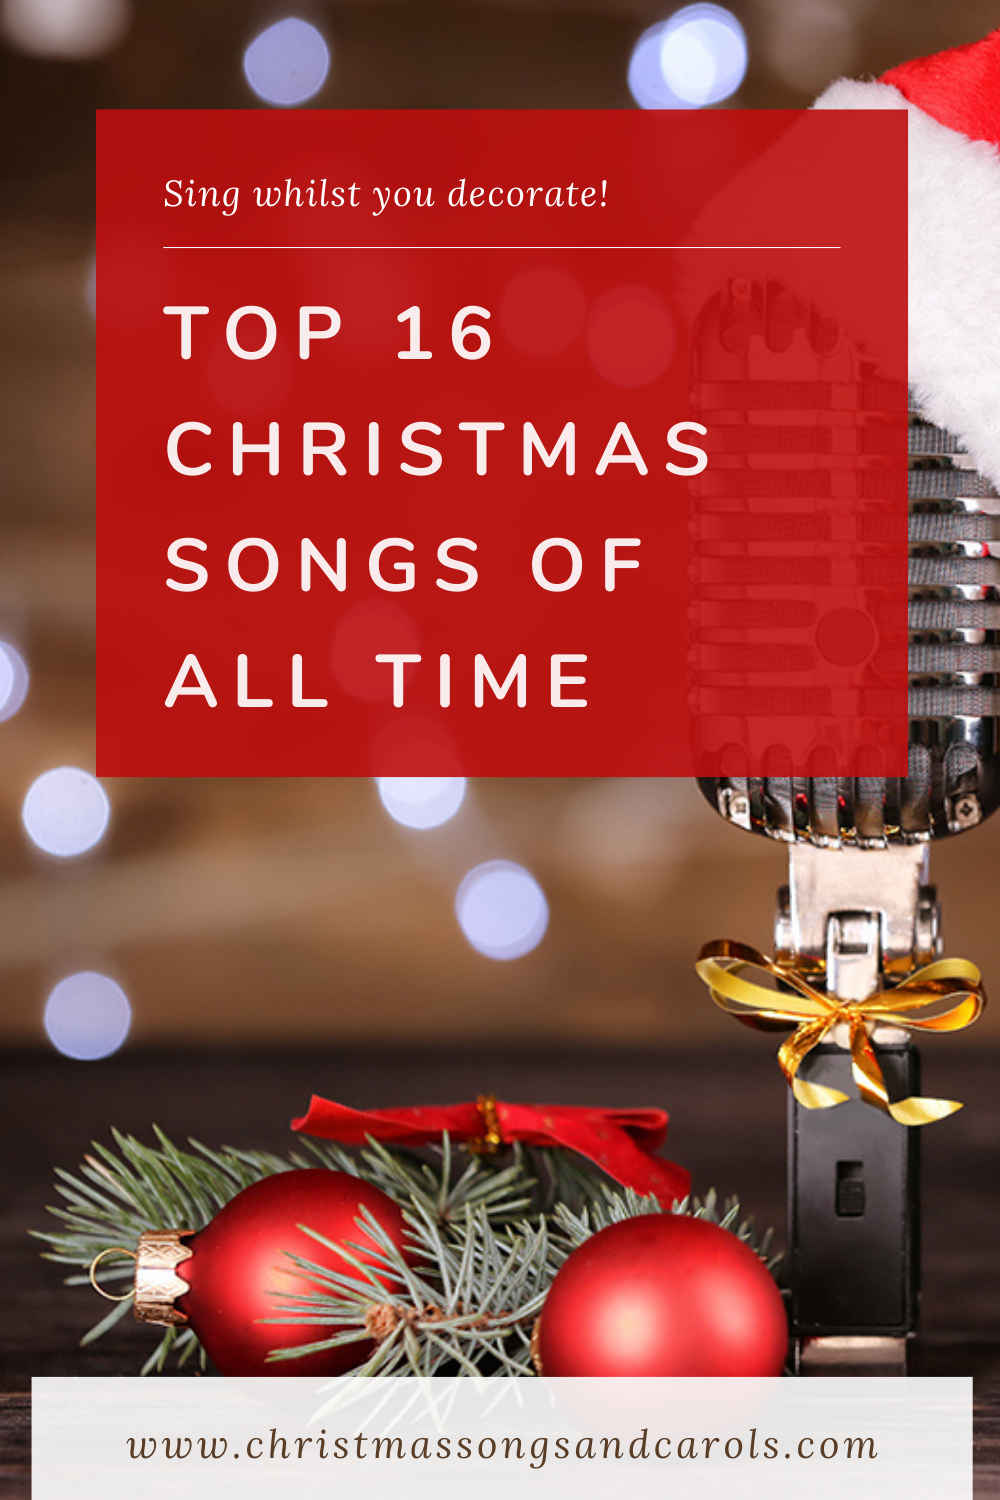 Discover What We Think Are The Top 16 Christmas Songs Of All Time Dÿz Dÿzµ In 2020 Best Christmas Songs Christmas Music Christmas Carols Songs